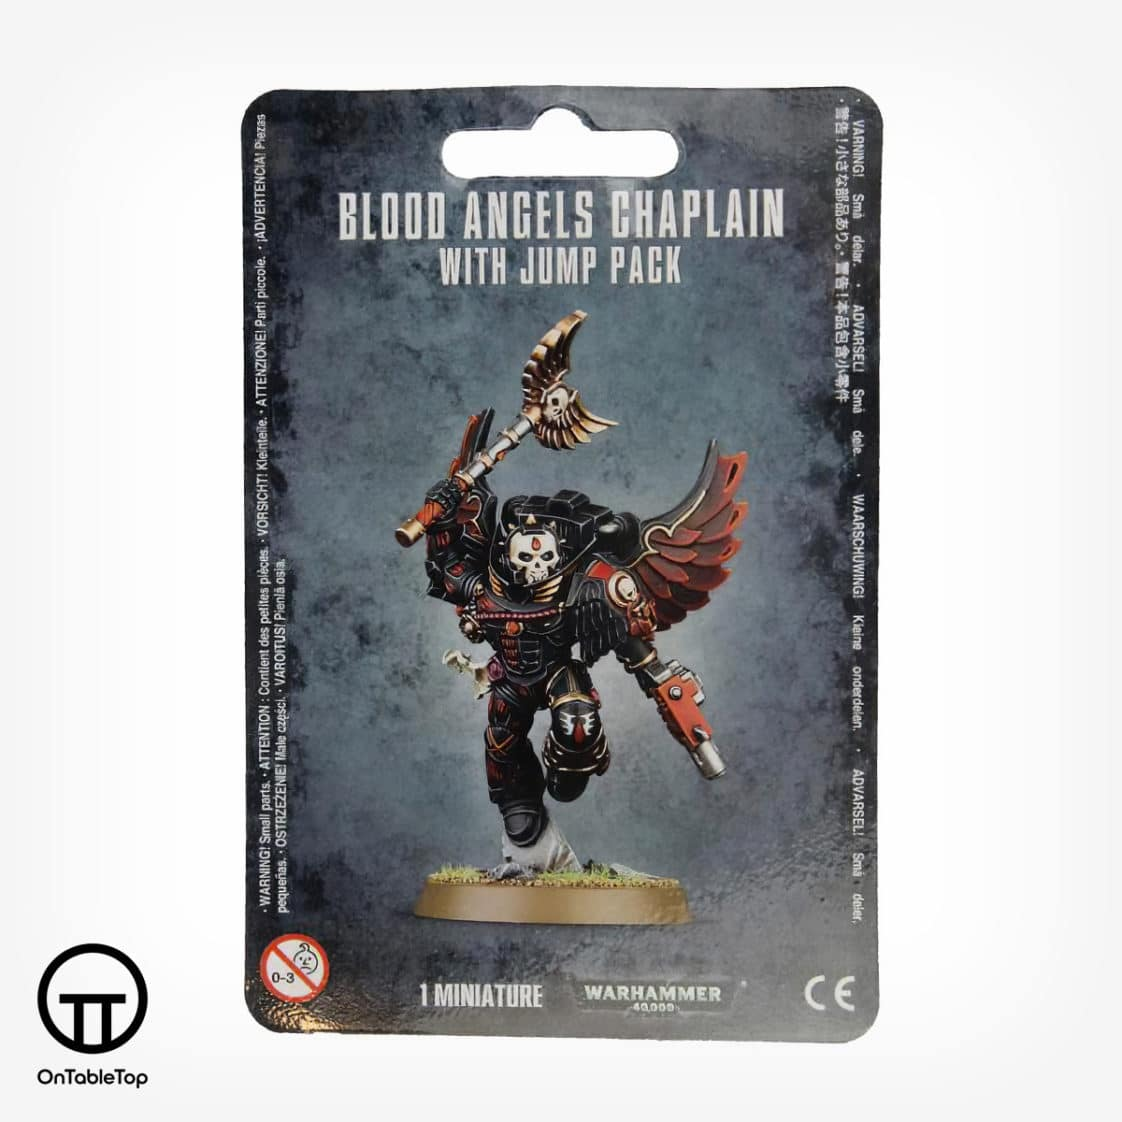 OTT-Blood-Angels-Chaplain-Jump-Pack-99070101034